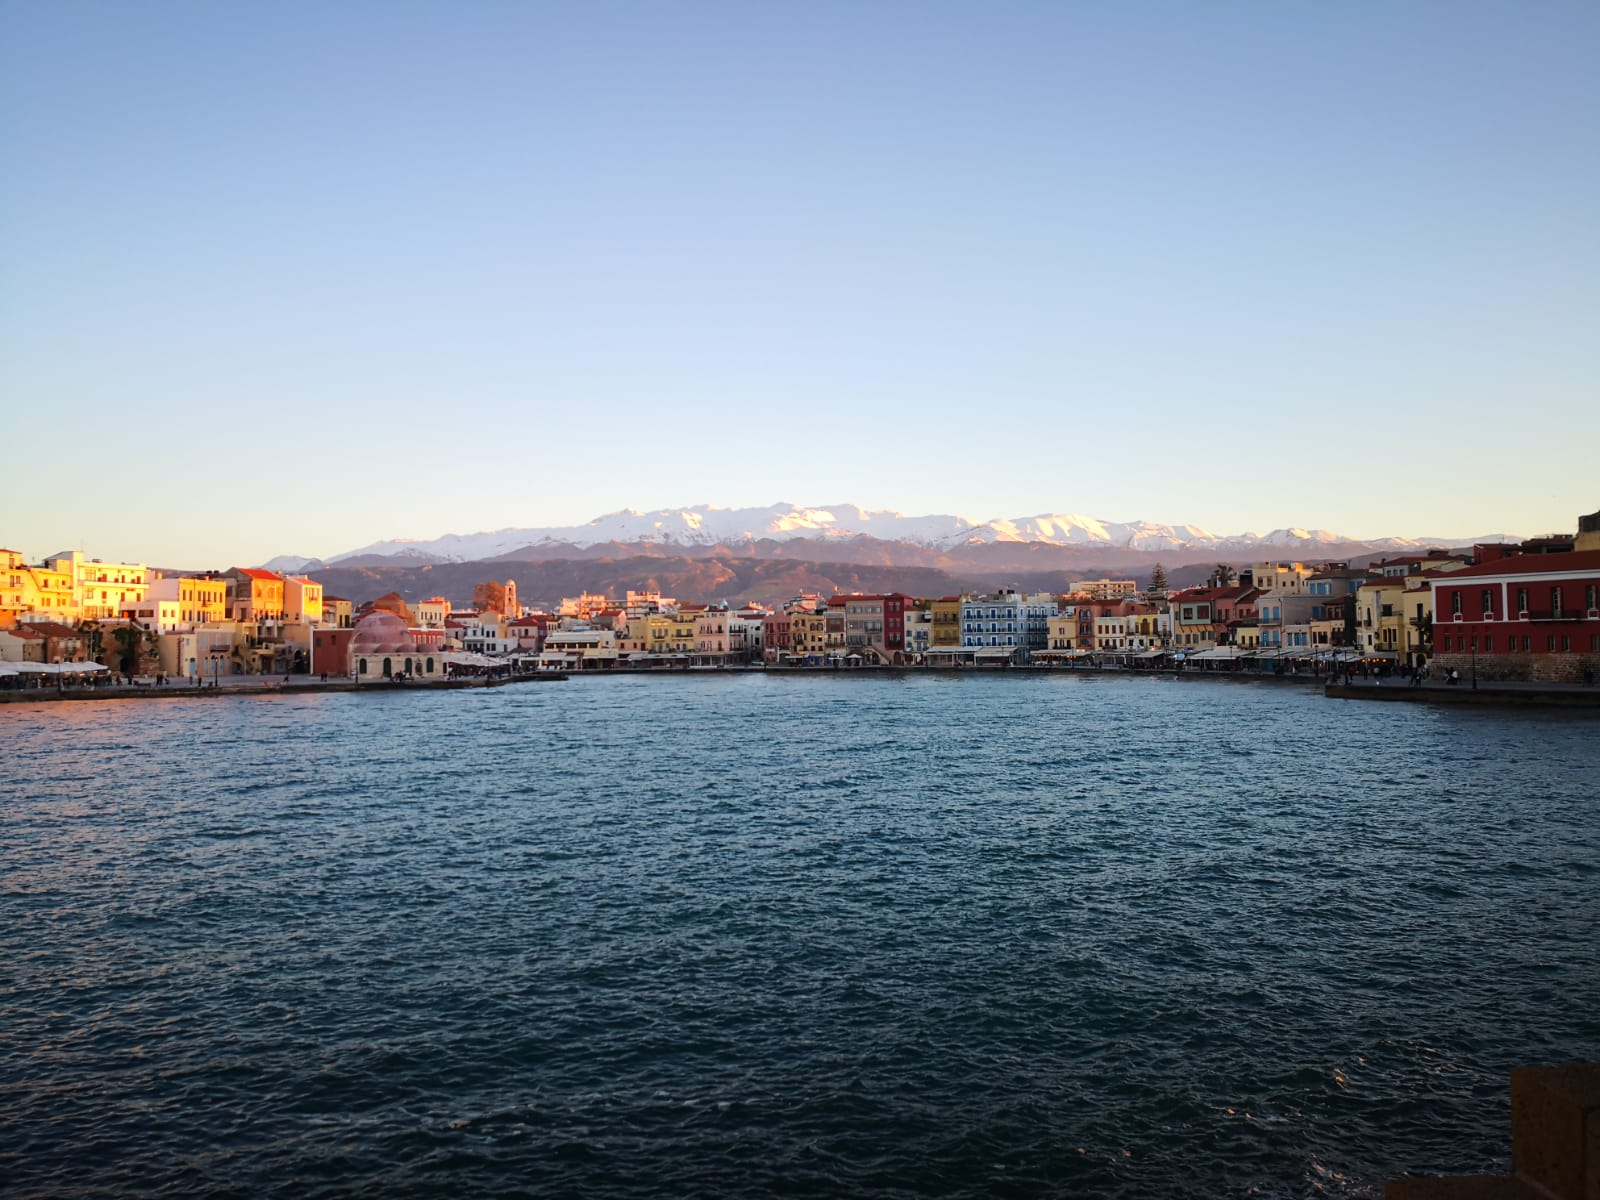 The old Venician Harbour of Chania at sunset, with the white mountains off in the distance.